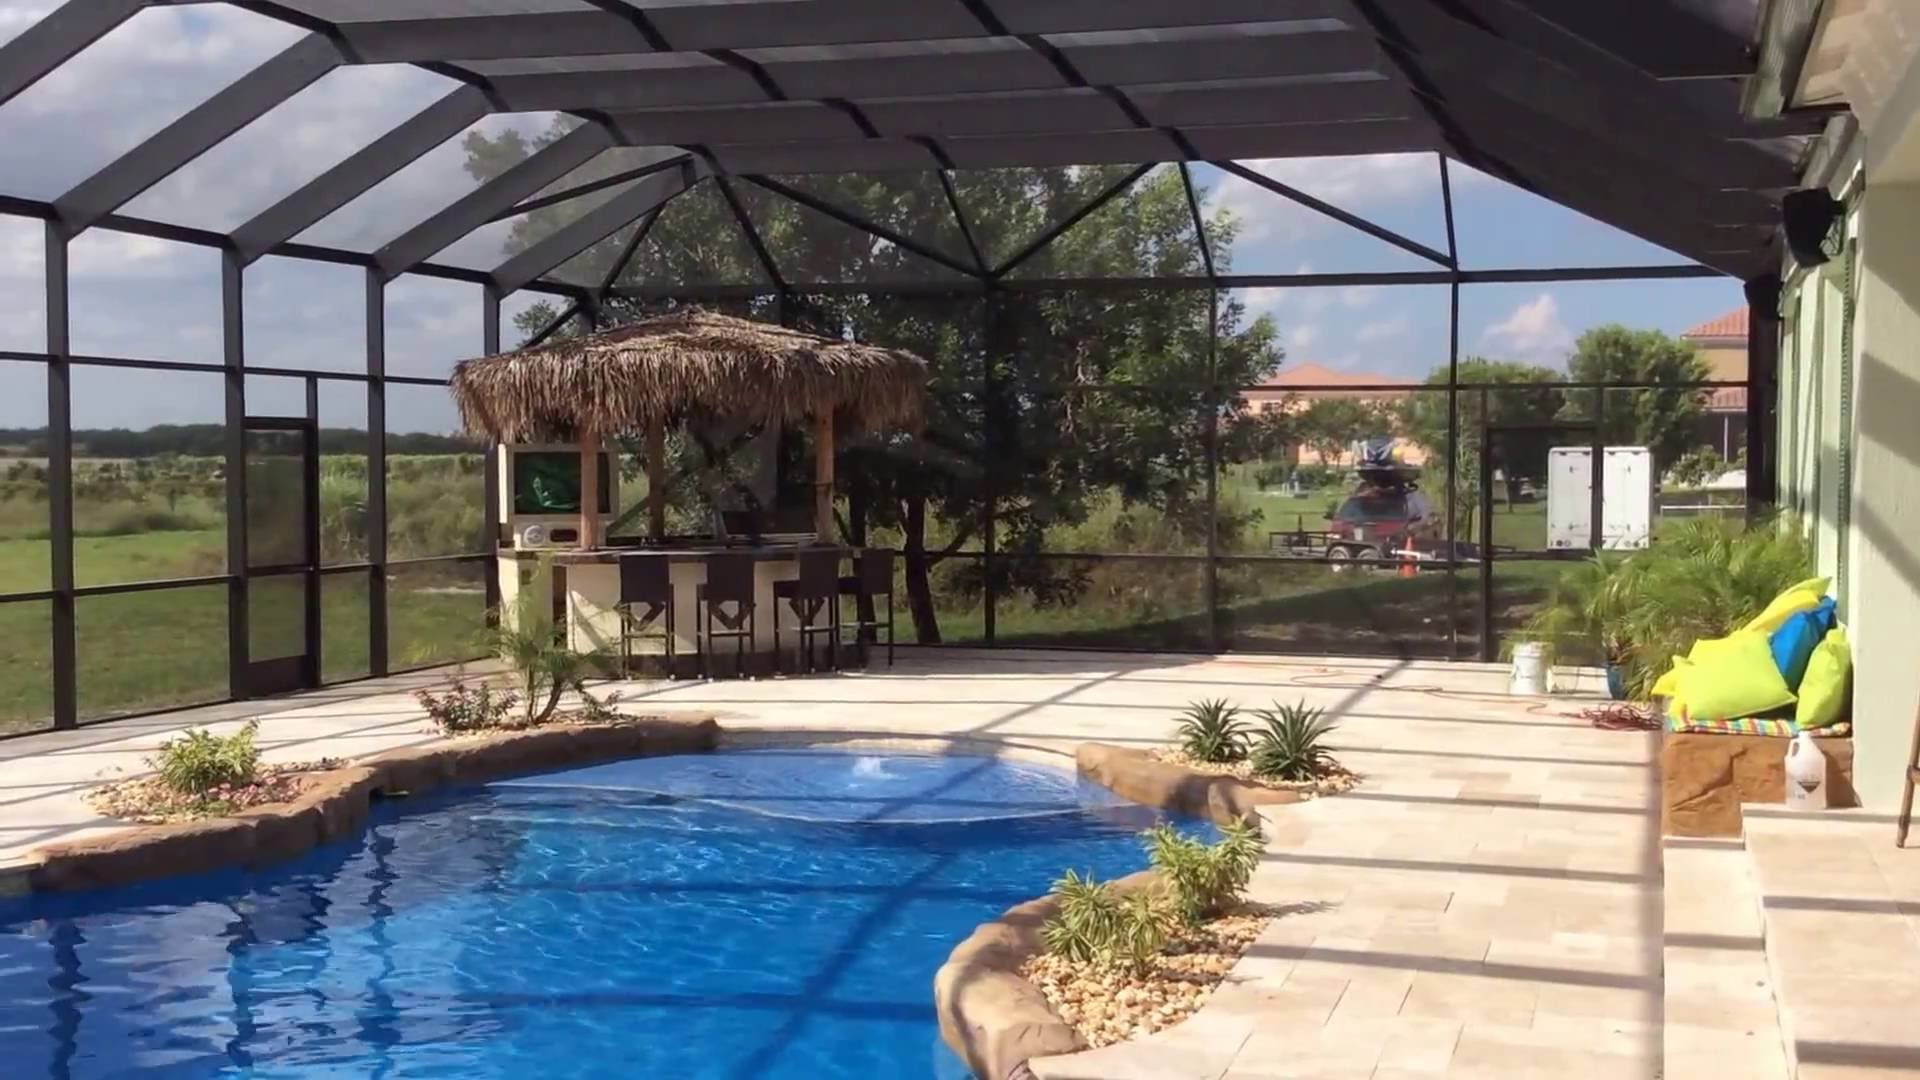 Pool Home for Sale Port St Lucie